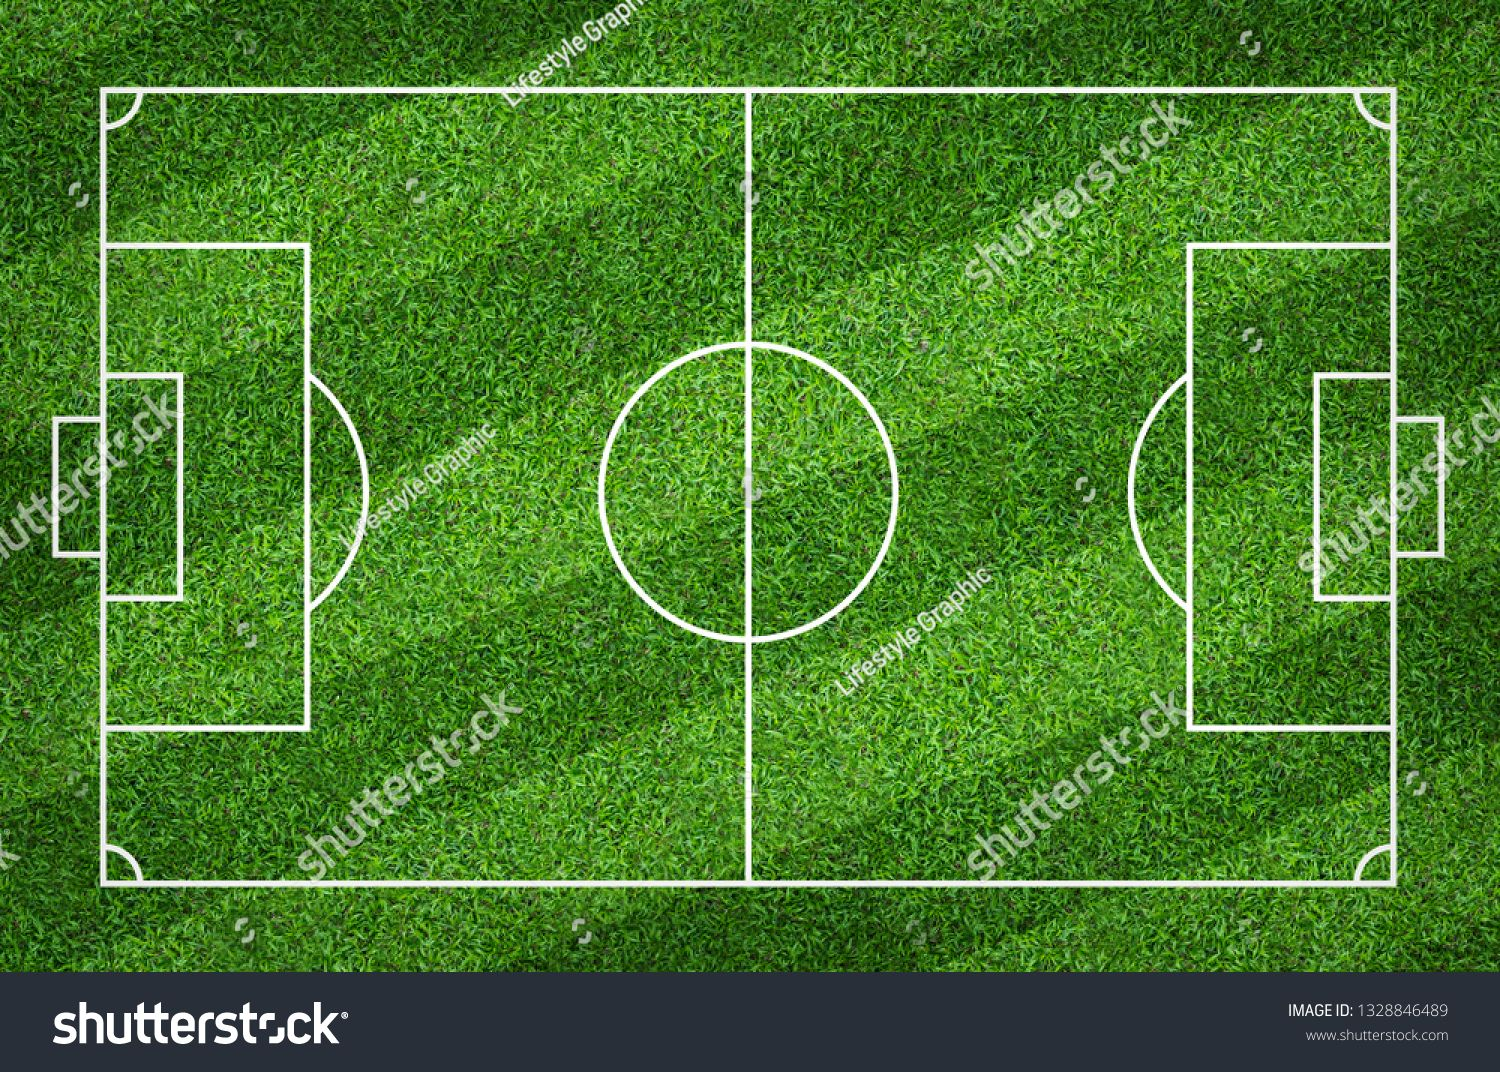 Football Field Or Soccer Field For Background Green Lawn Court For Create Sport Game Ad Sponsored Background Gre Football Field Soccer Field Green Lawn